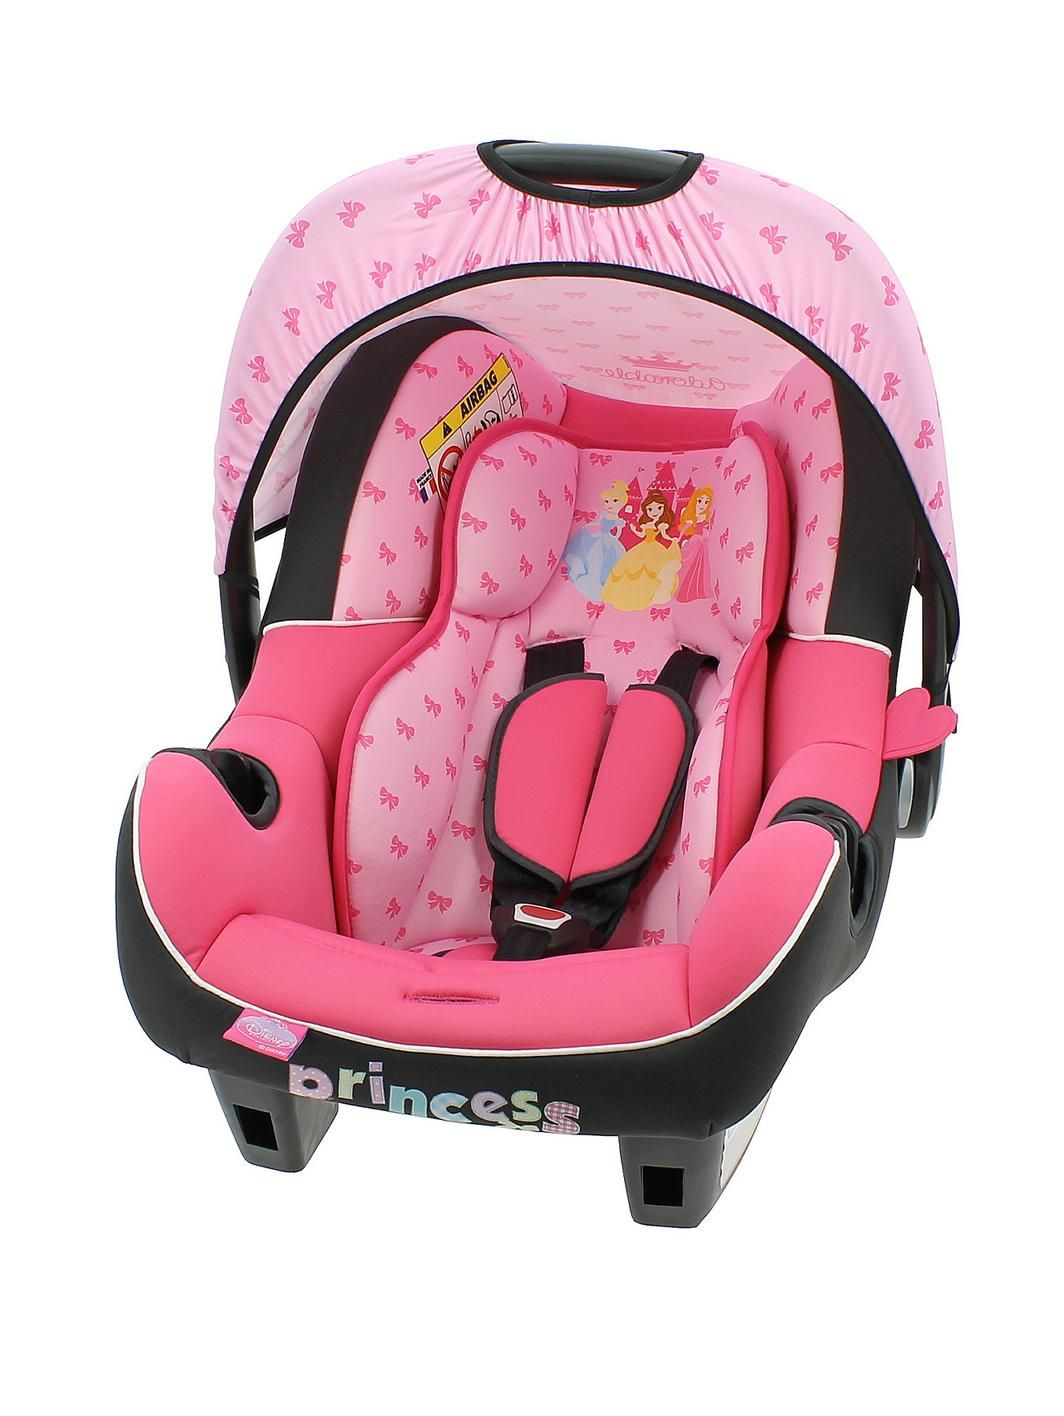 Womens Mens and Kids Fashion Furniture Electricals